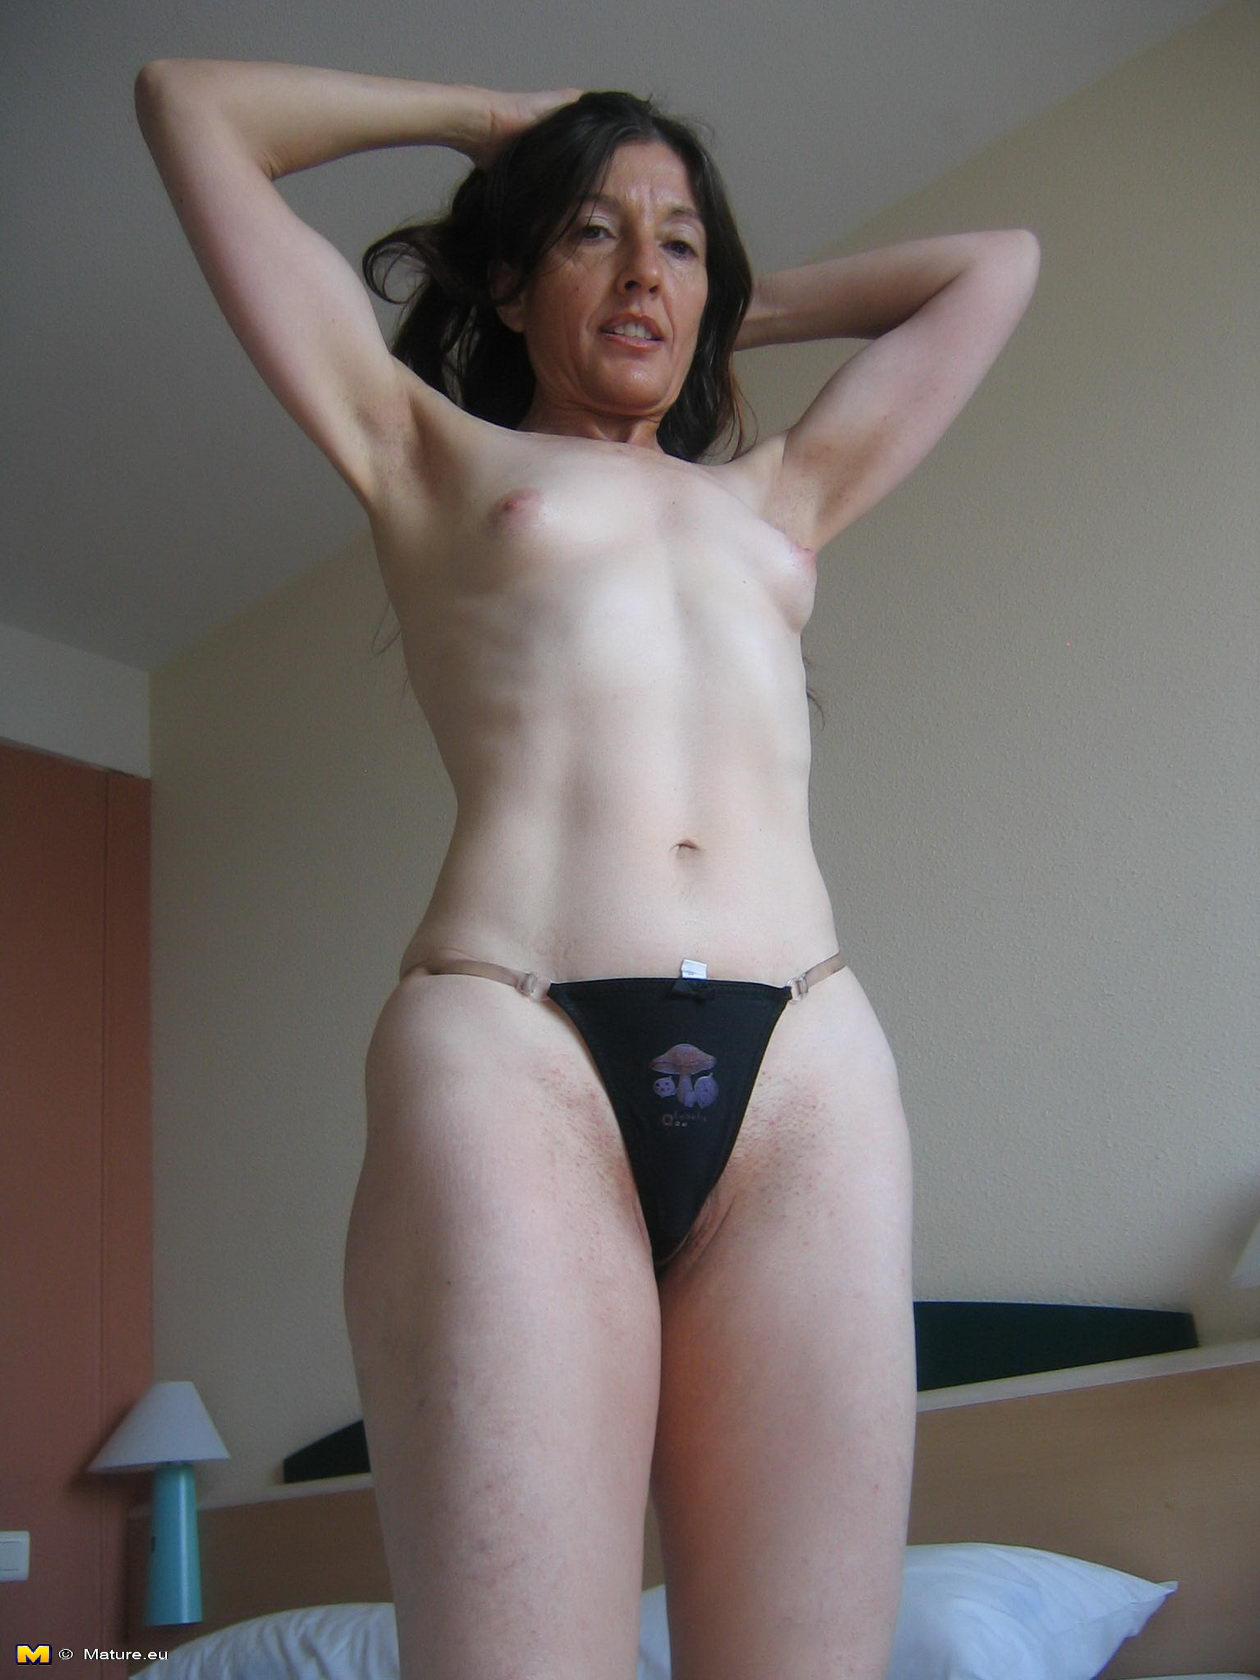 when you join mature nl you will also have full access to all the